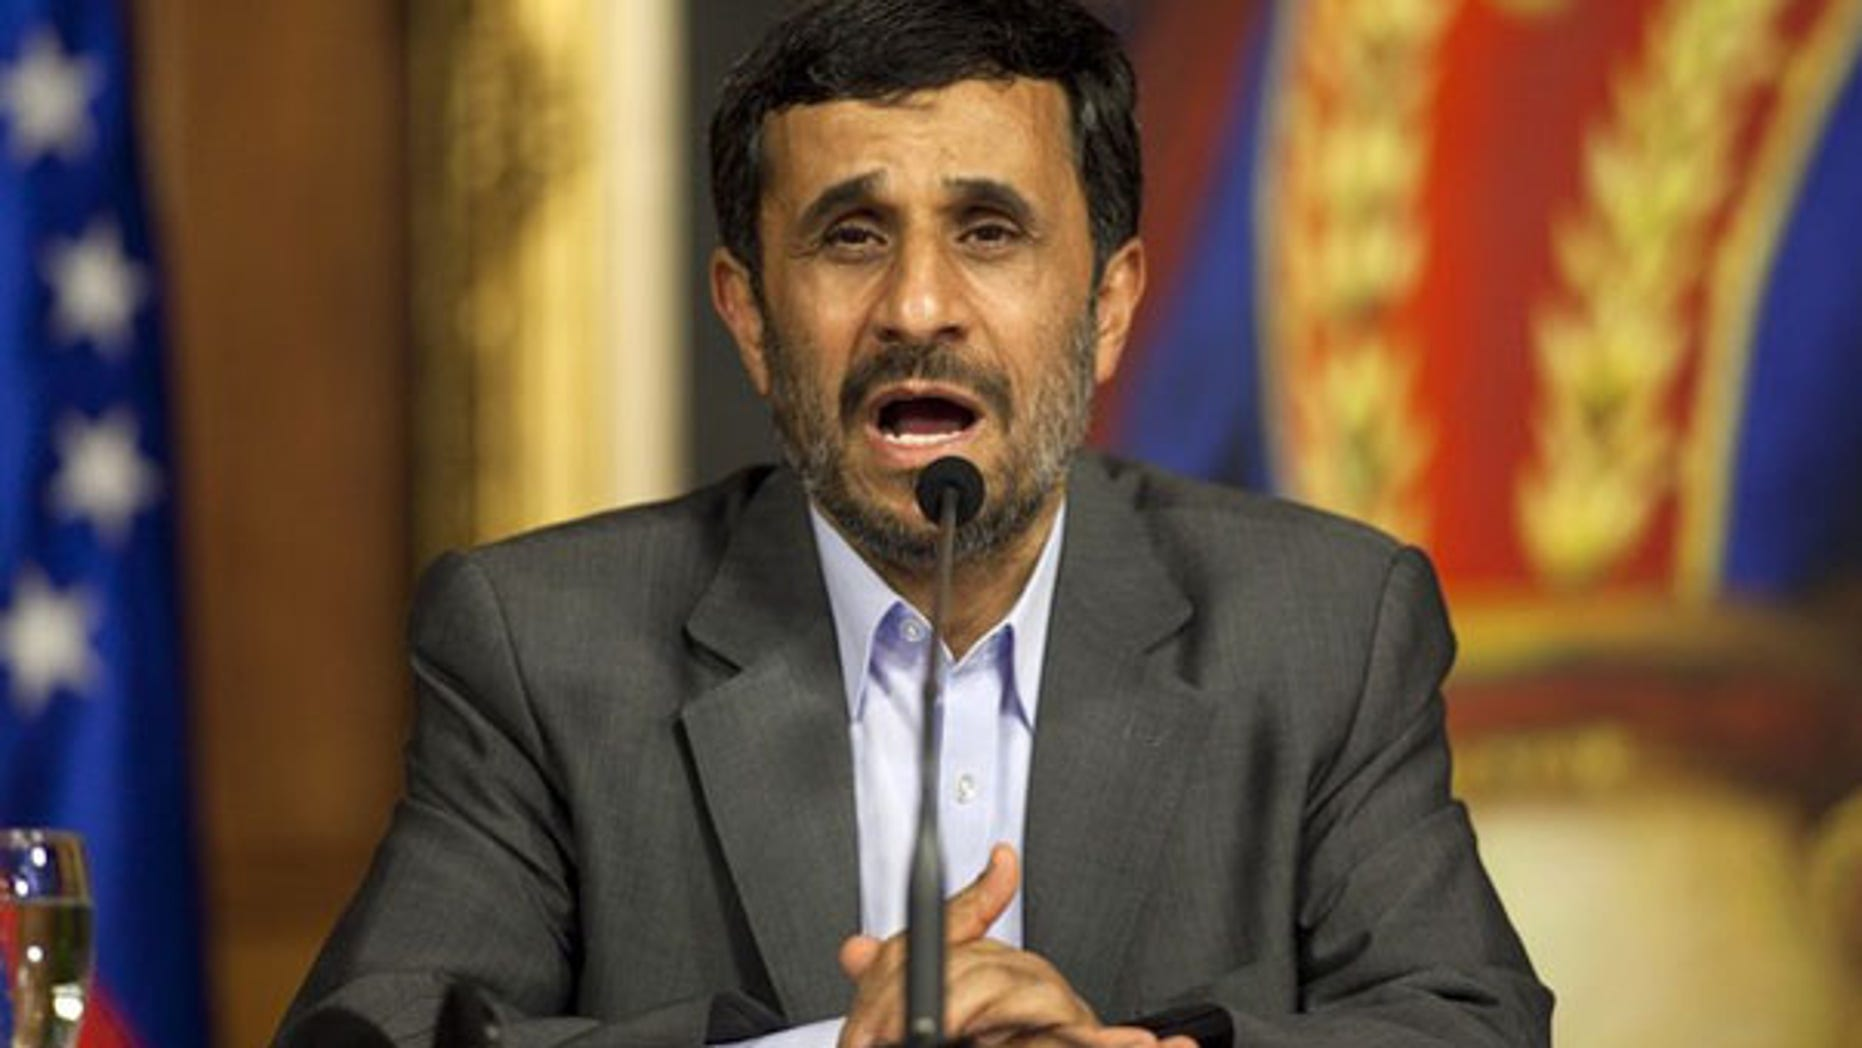 Iran President Mahmoud Ahmadinejad talks to the media in Caracas, Venezuela, Nov. 25. (Reuters Photo)